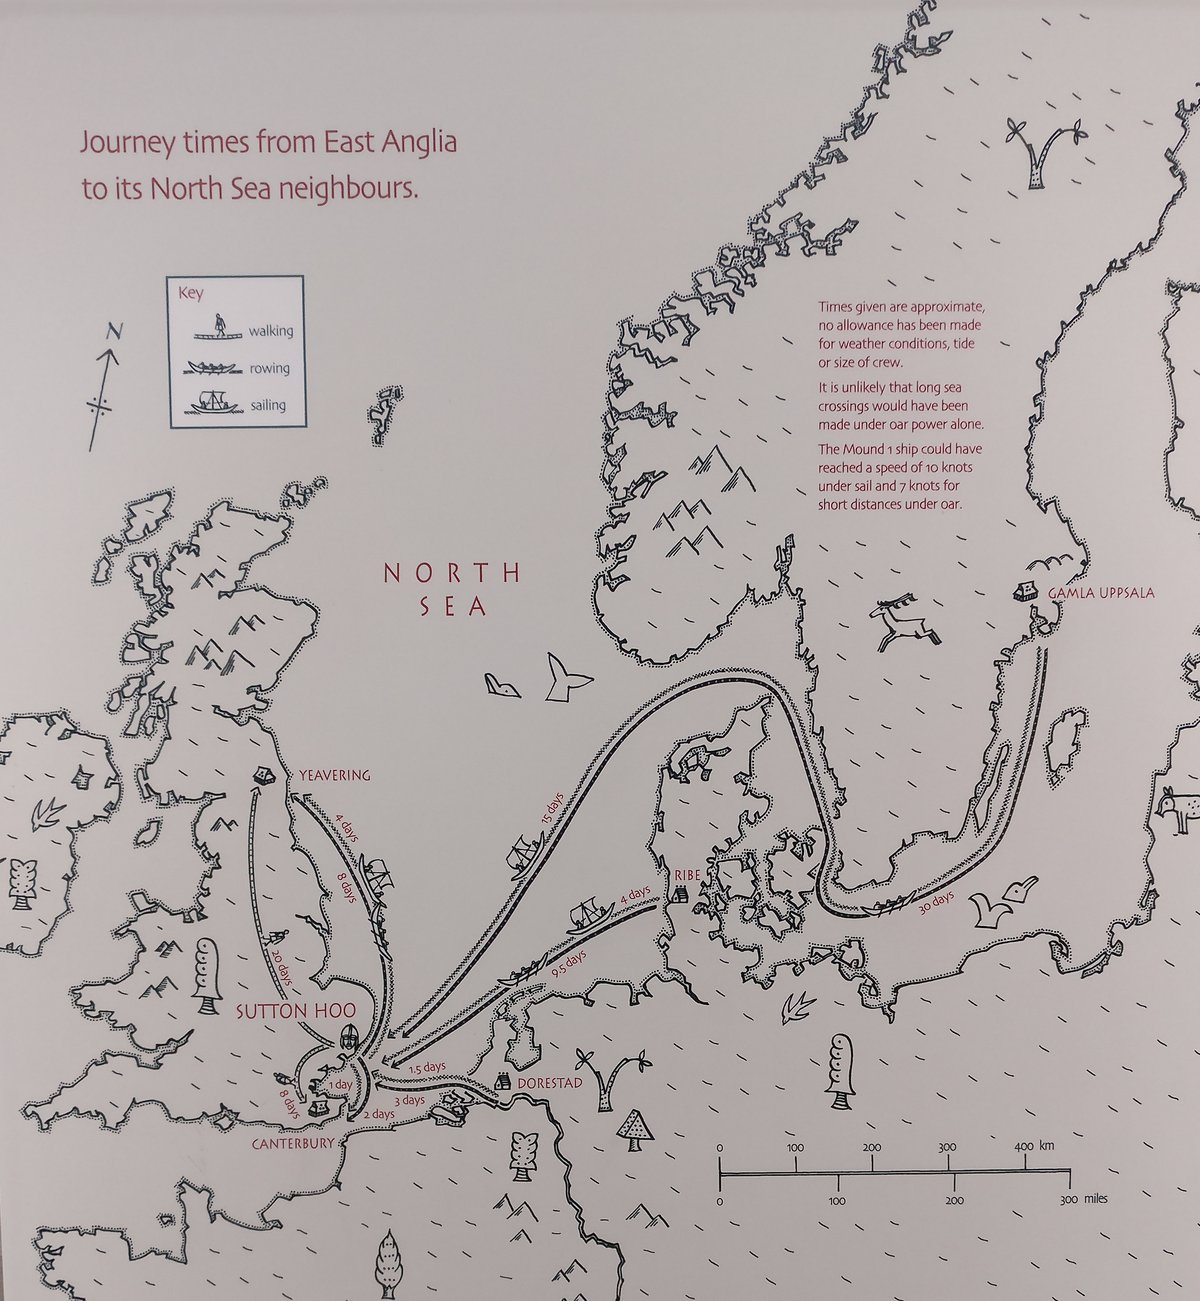 Iron age land vs sea travel times map